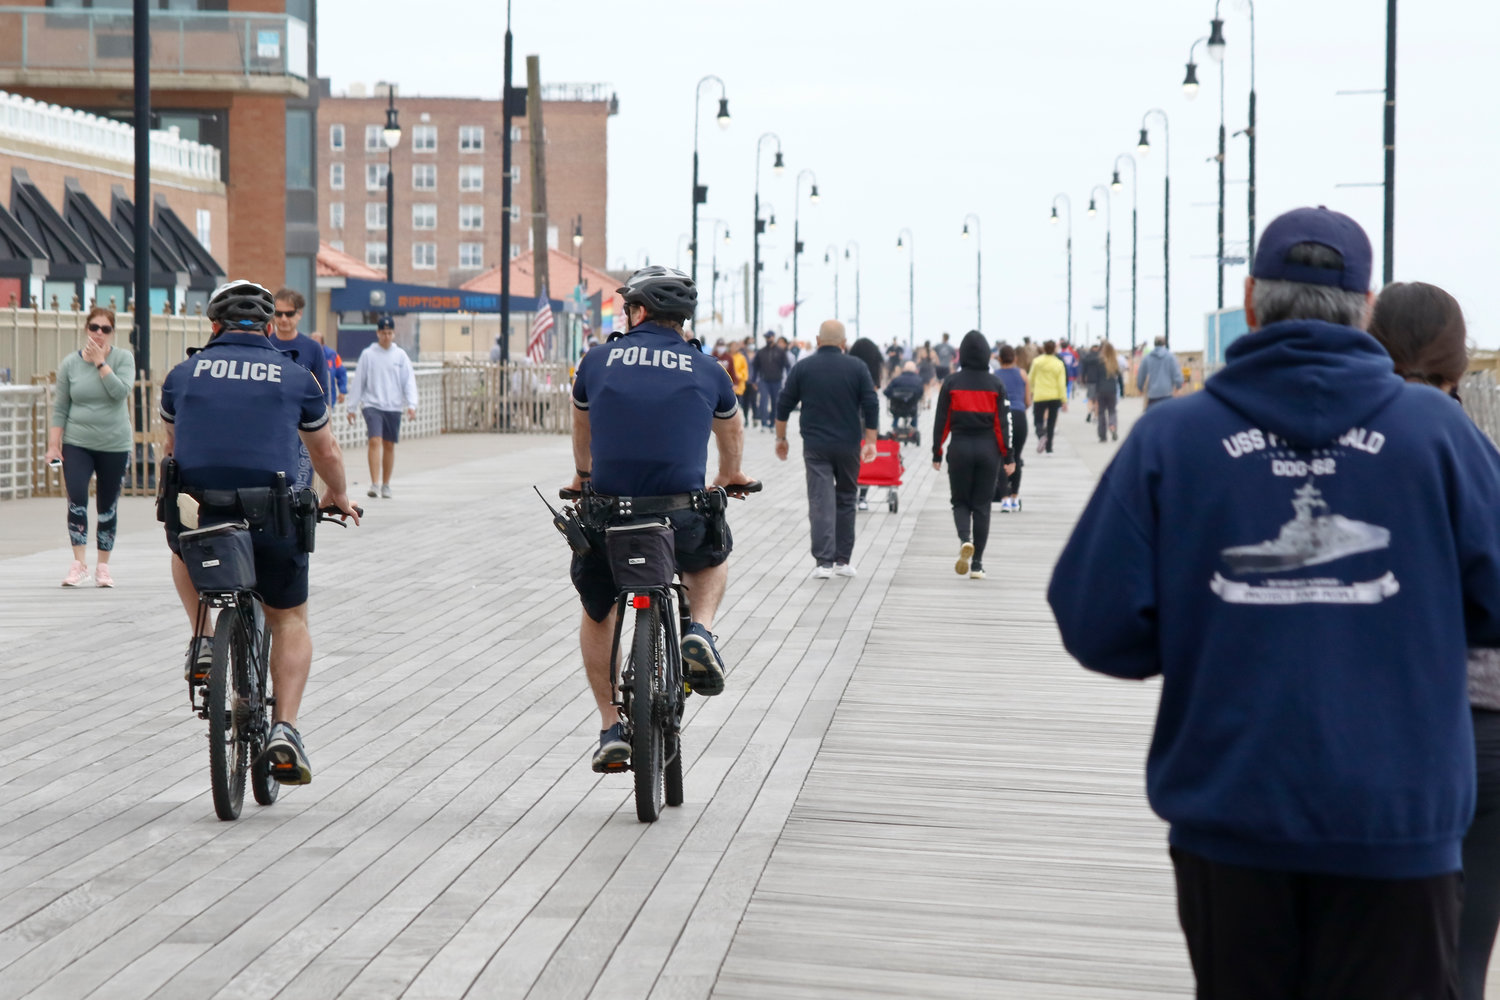 Long Beach police officers were on the boardwalk enforcing social distancing and other safety guidelines.